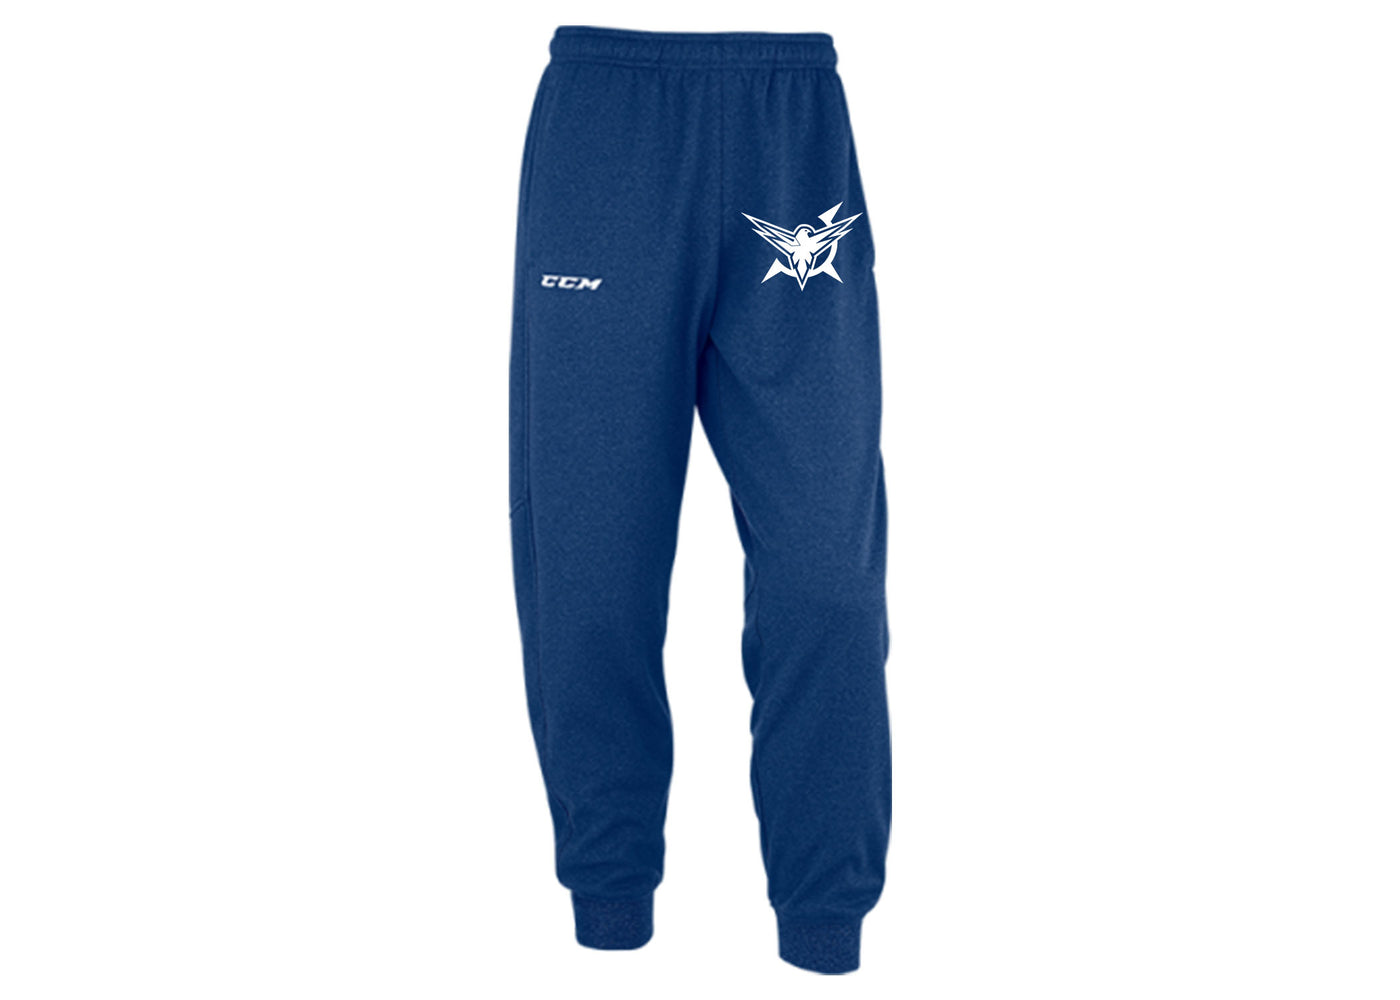 Icehawks CCM Team Training Cuffed Pant